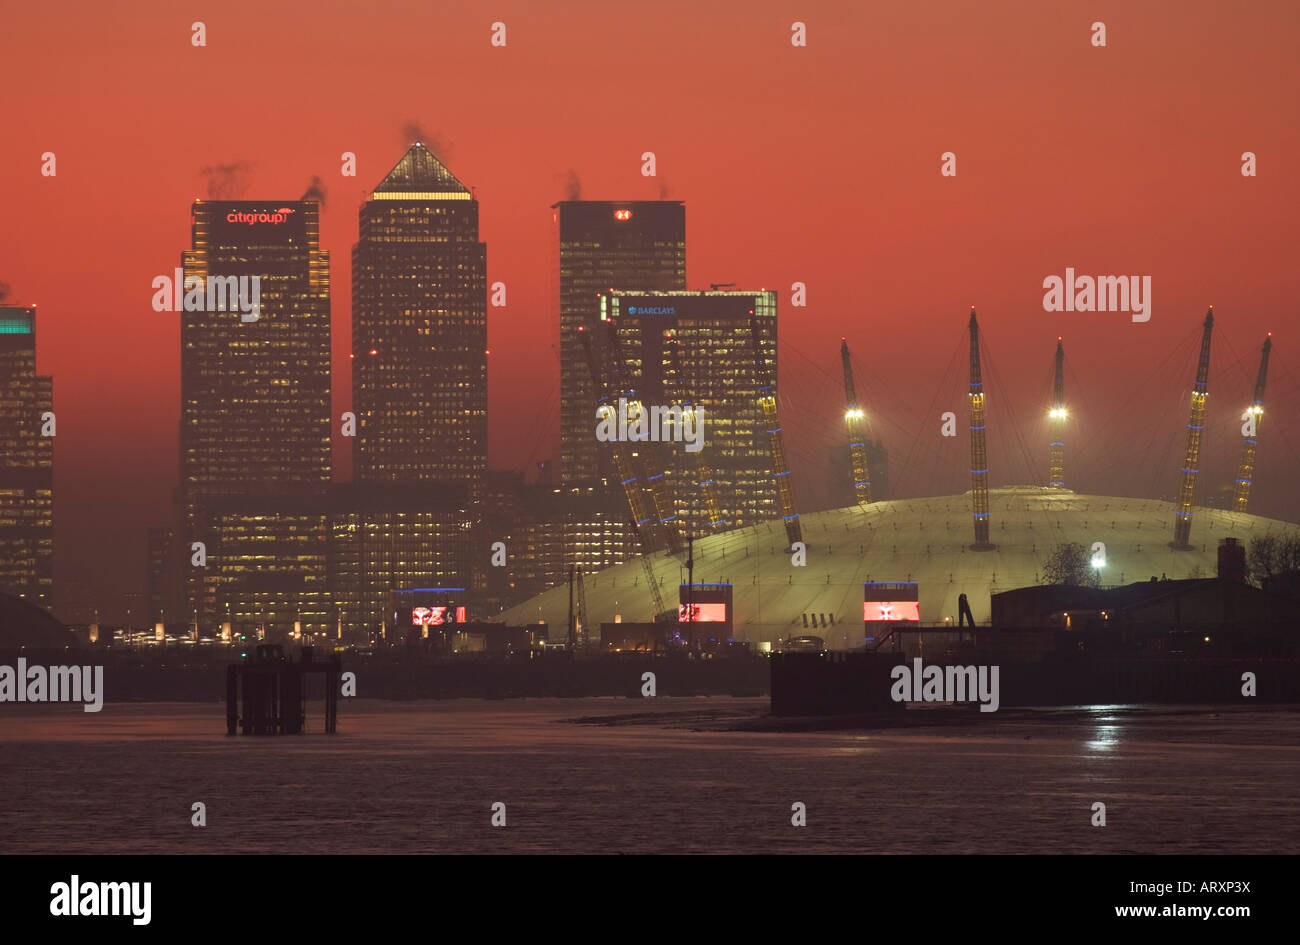 Canary Wharf & o2 Dome - London Stockbild